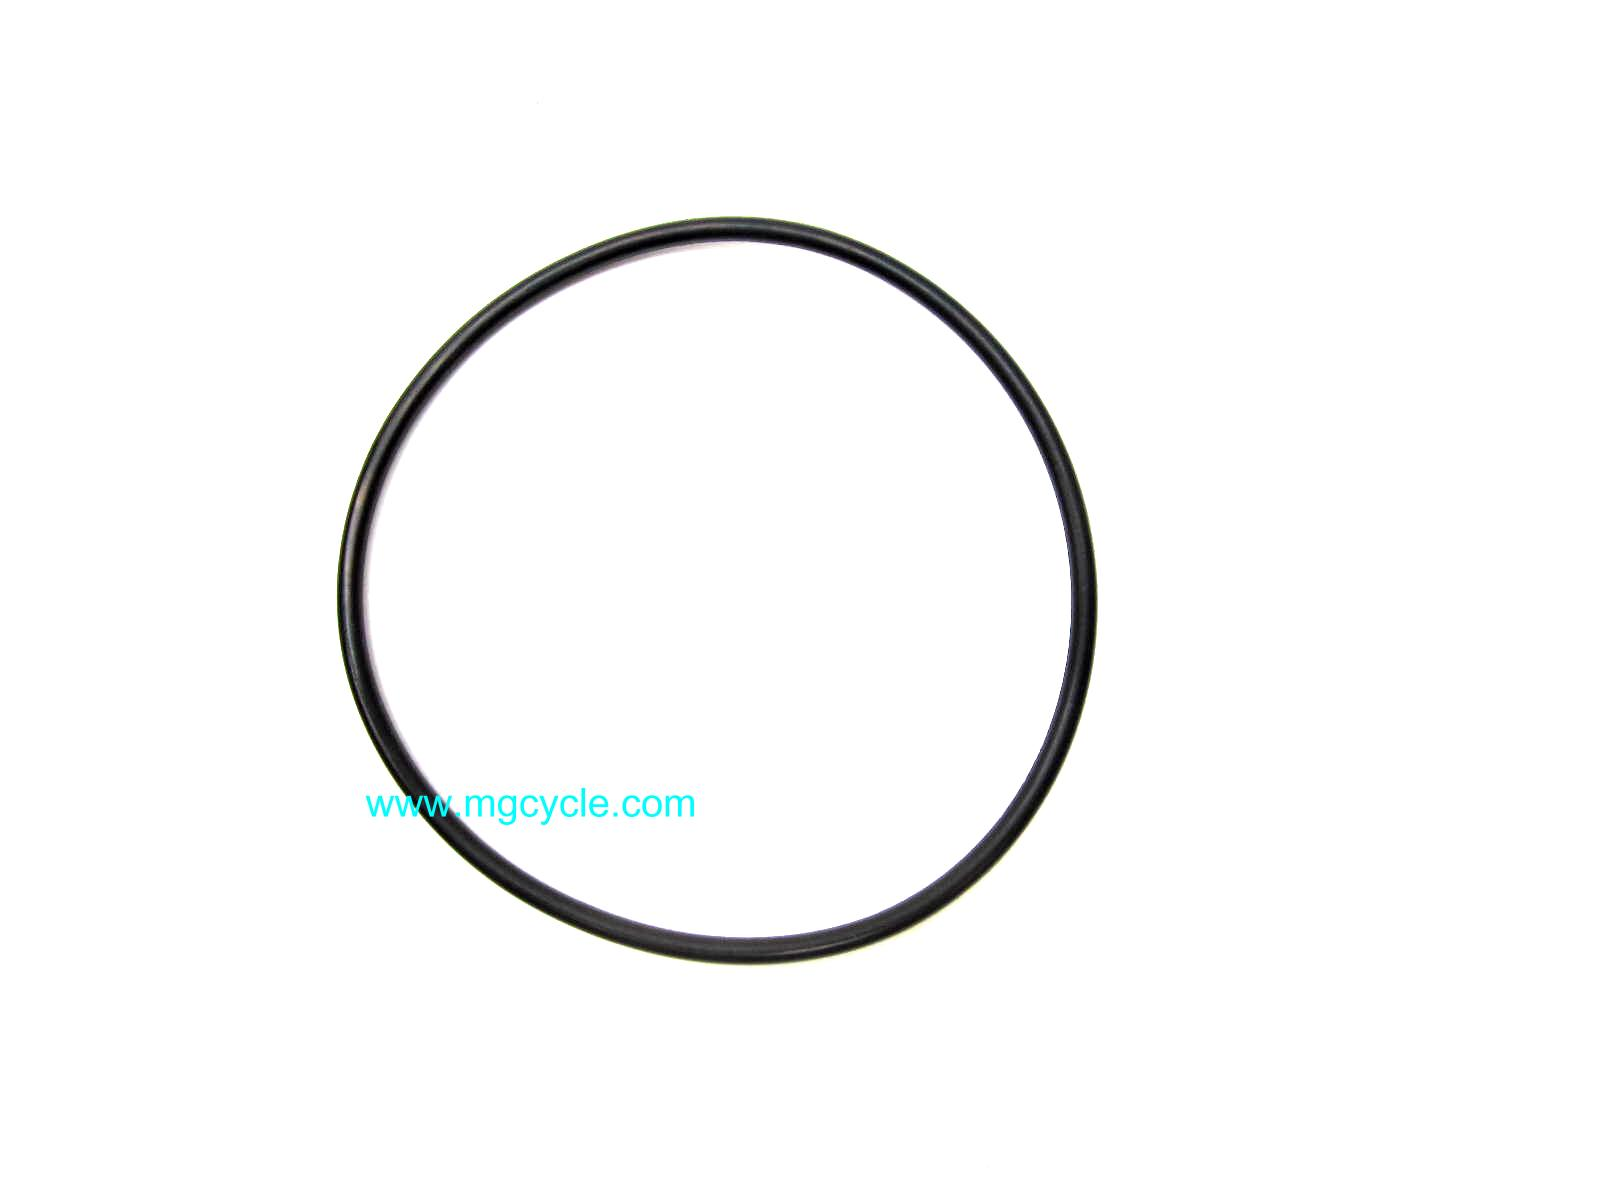 Oil filter cover o ring, Cent V11 Sport, speedometer oring 100mm